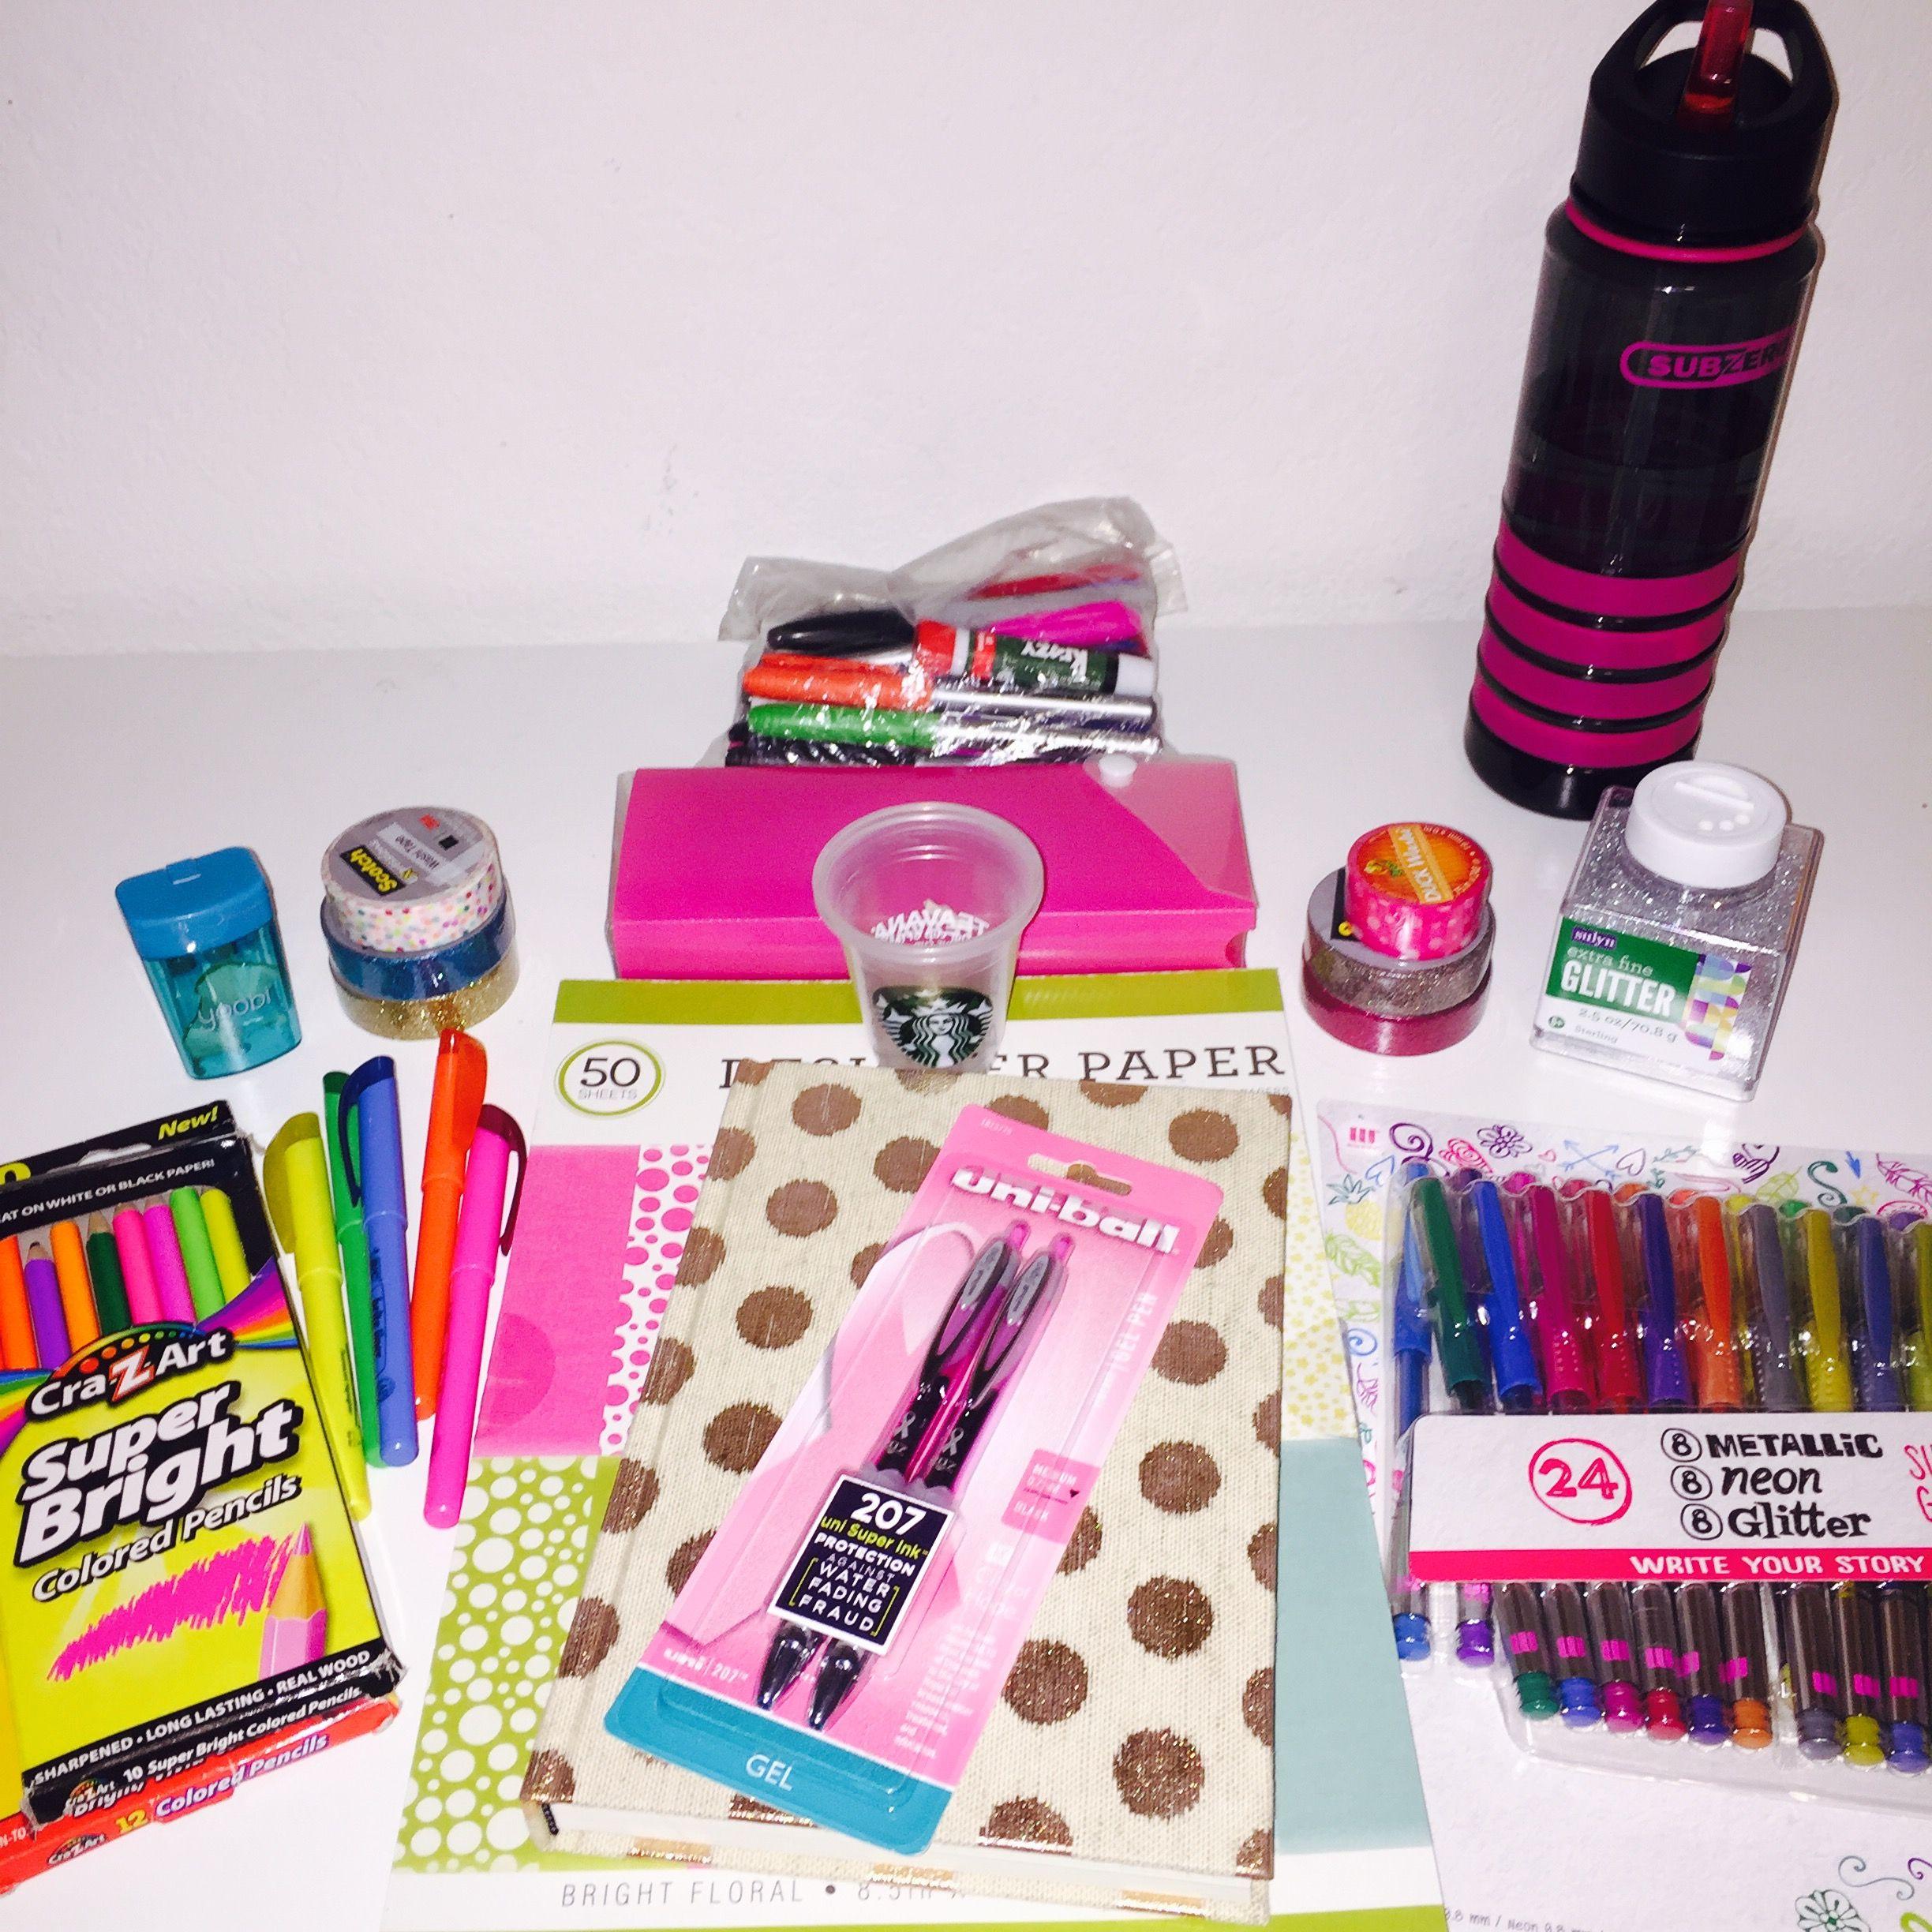 Bullet Journal..Smash Journal..Art Journal..Whatever you want to call it! #beginner I'm open to tips! 💖